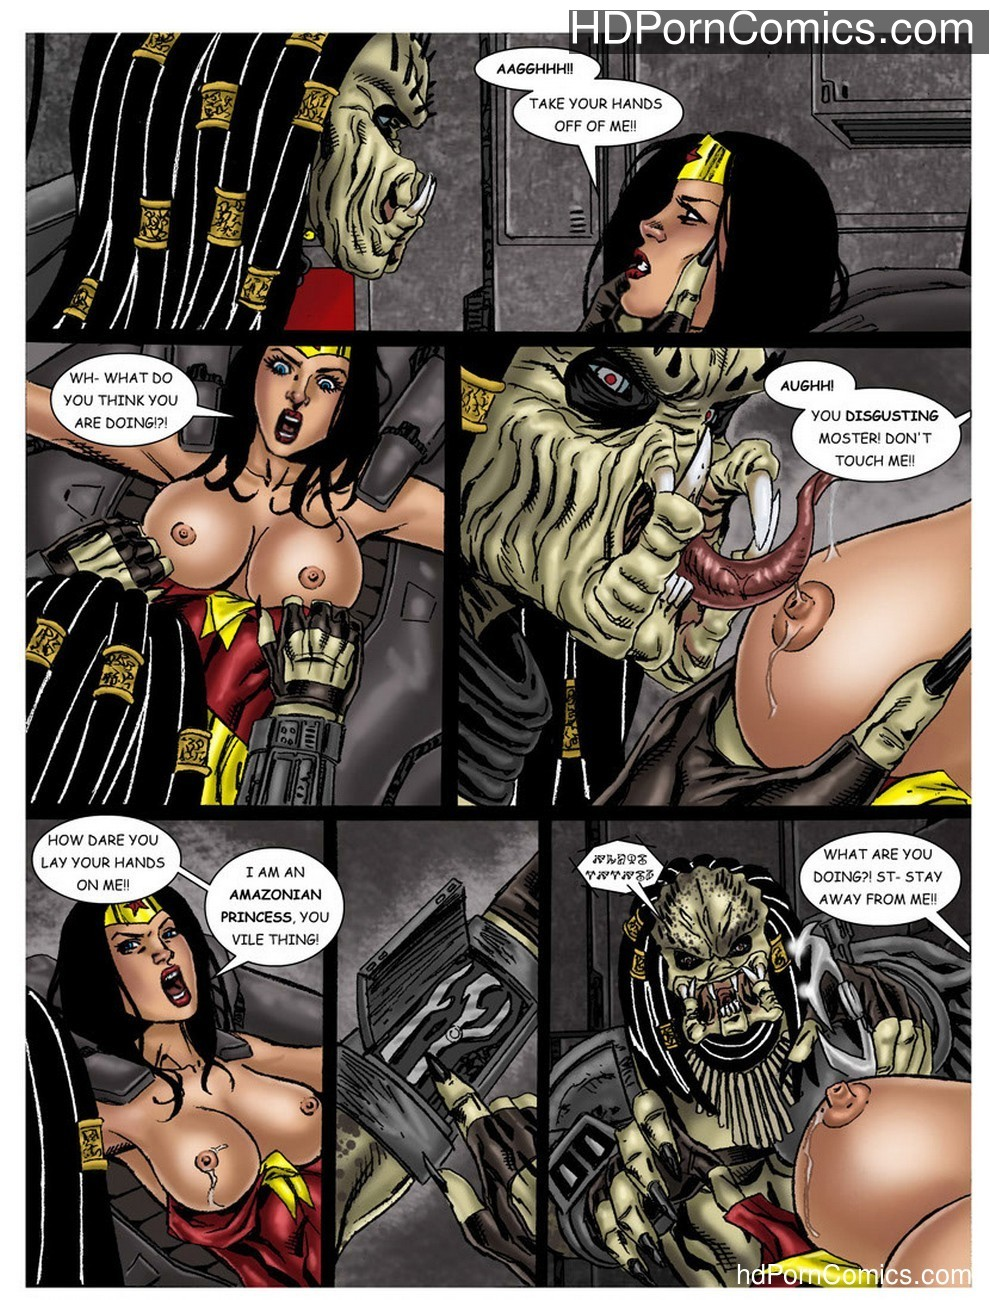 Wonder Woman - In The Clutches Of The Predator 1 11 free sex comic